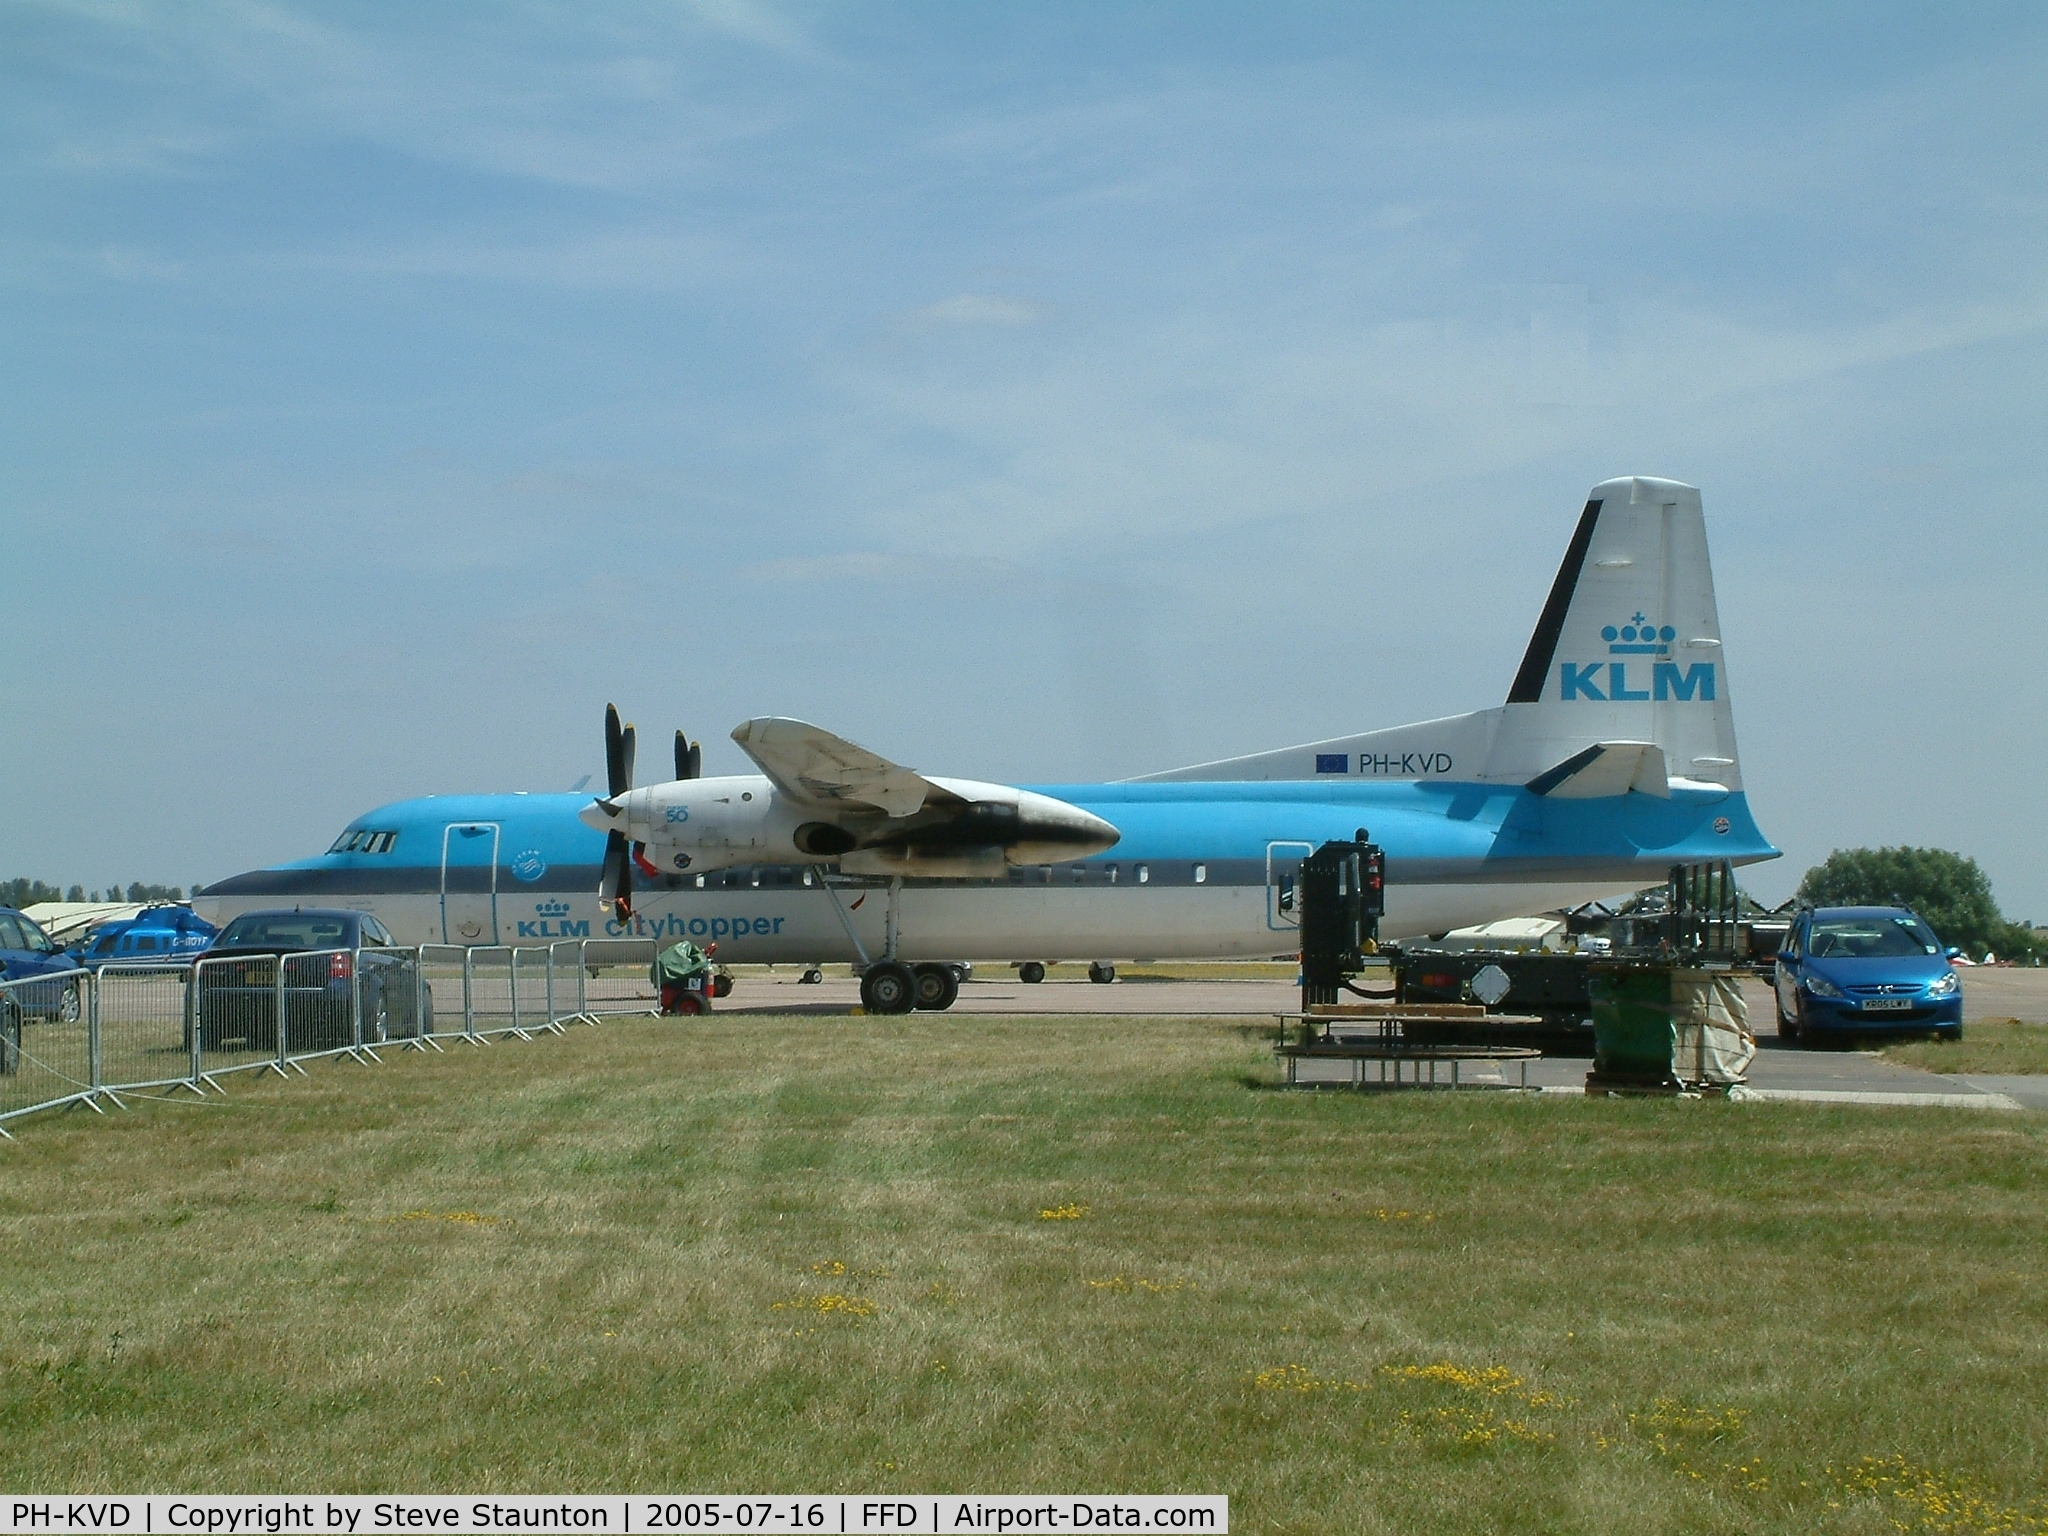 PH-KVD, 1990 Fokker 50 C/N 20197, Royal International Air Tattoo 2005